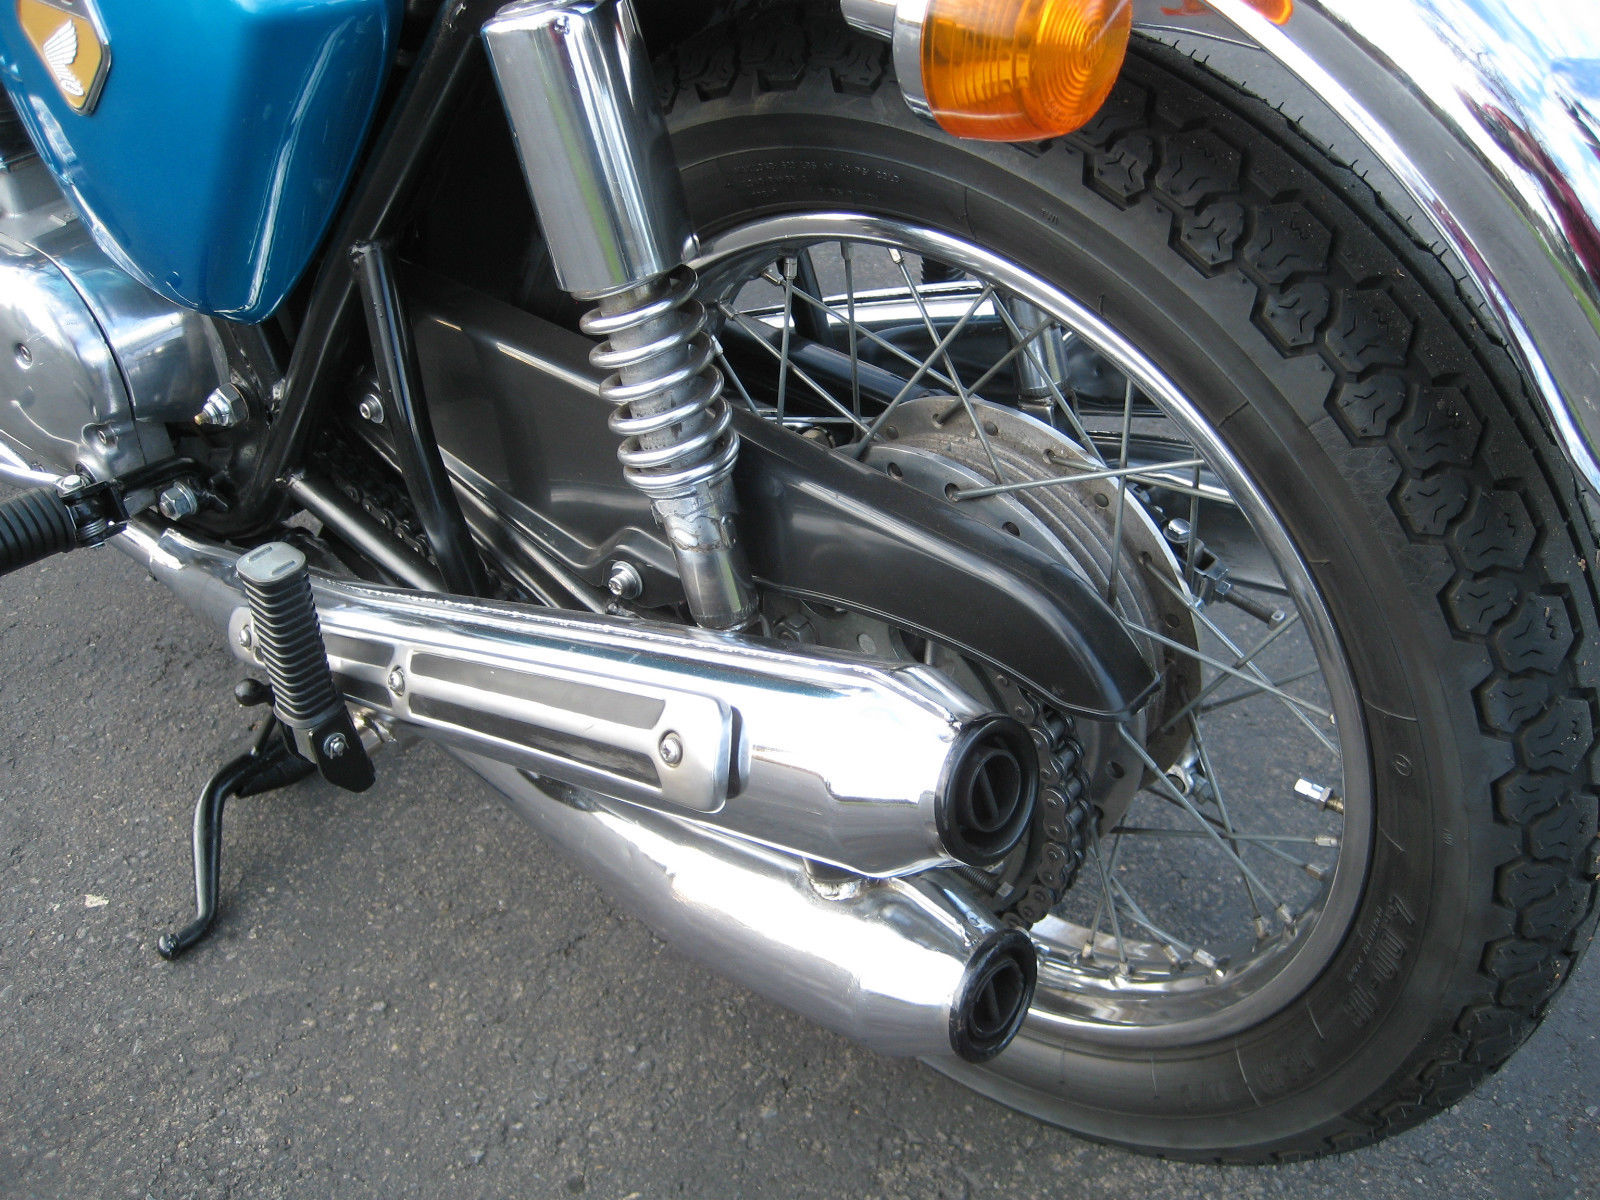 Honda CB750 K0 - 1970 - Mufflers, Exhausts, Rear Shock Absorber and Chain Guard.